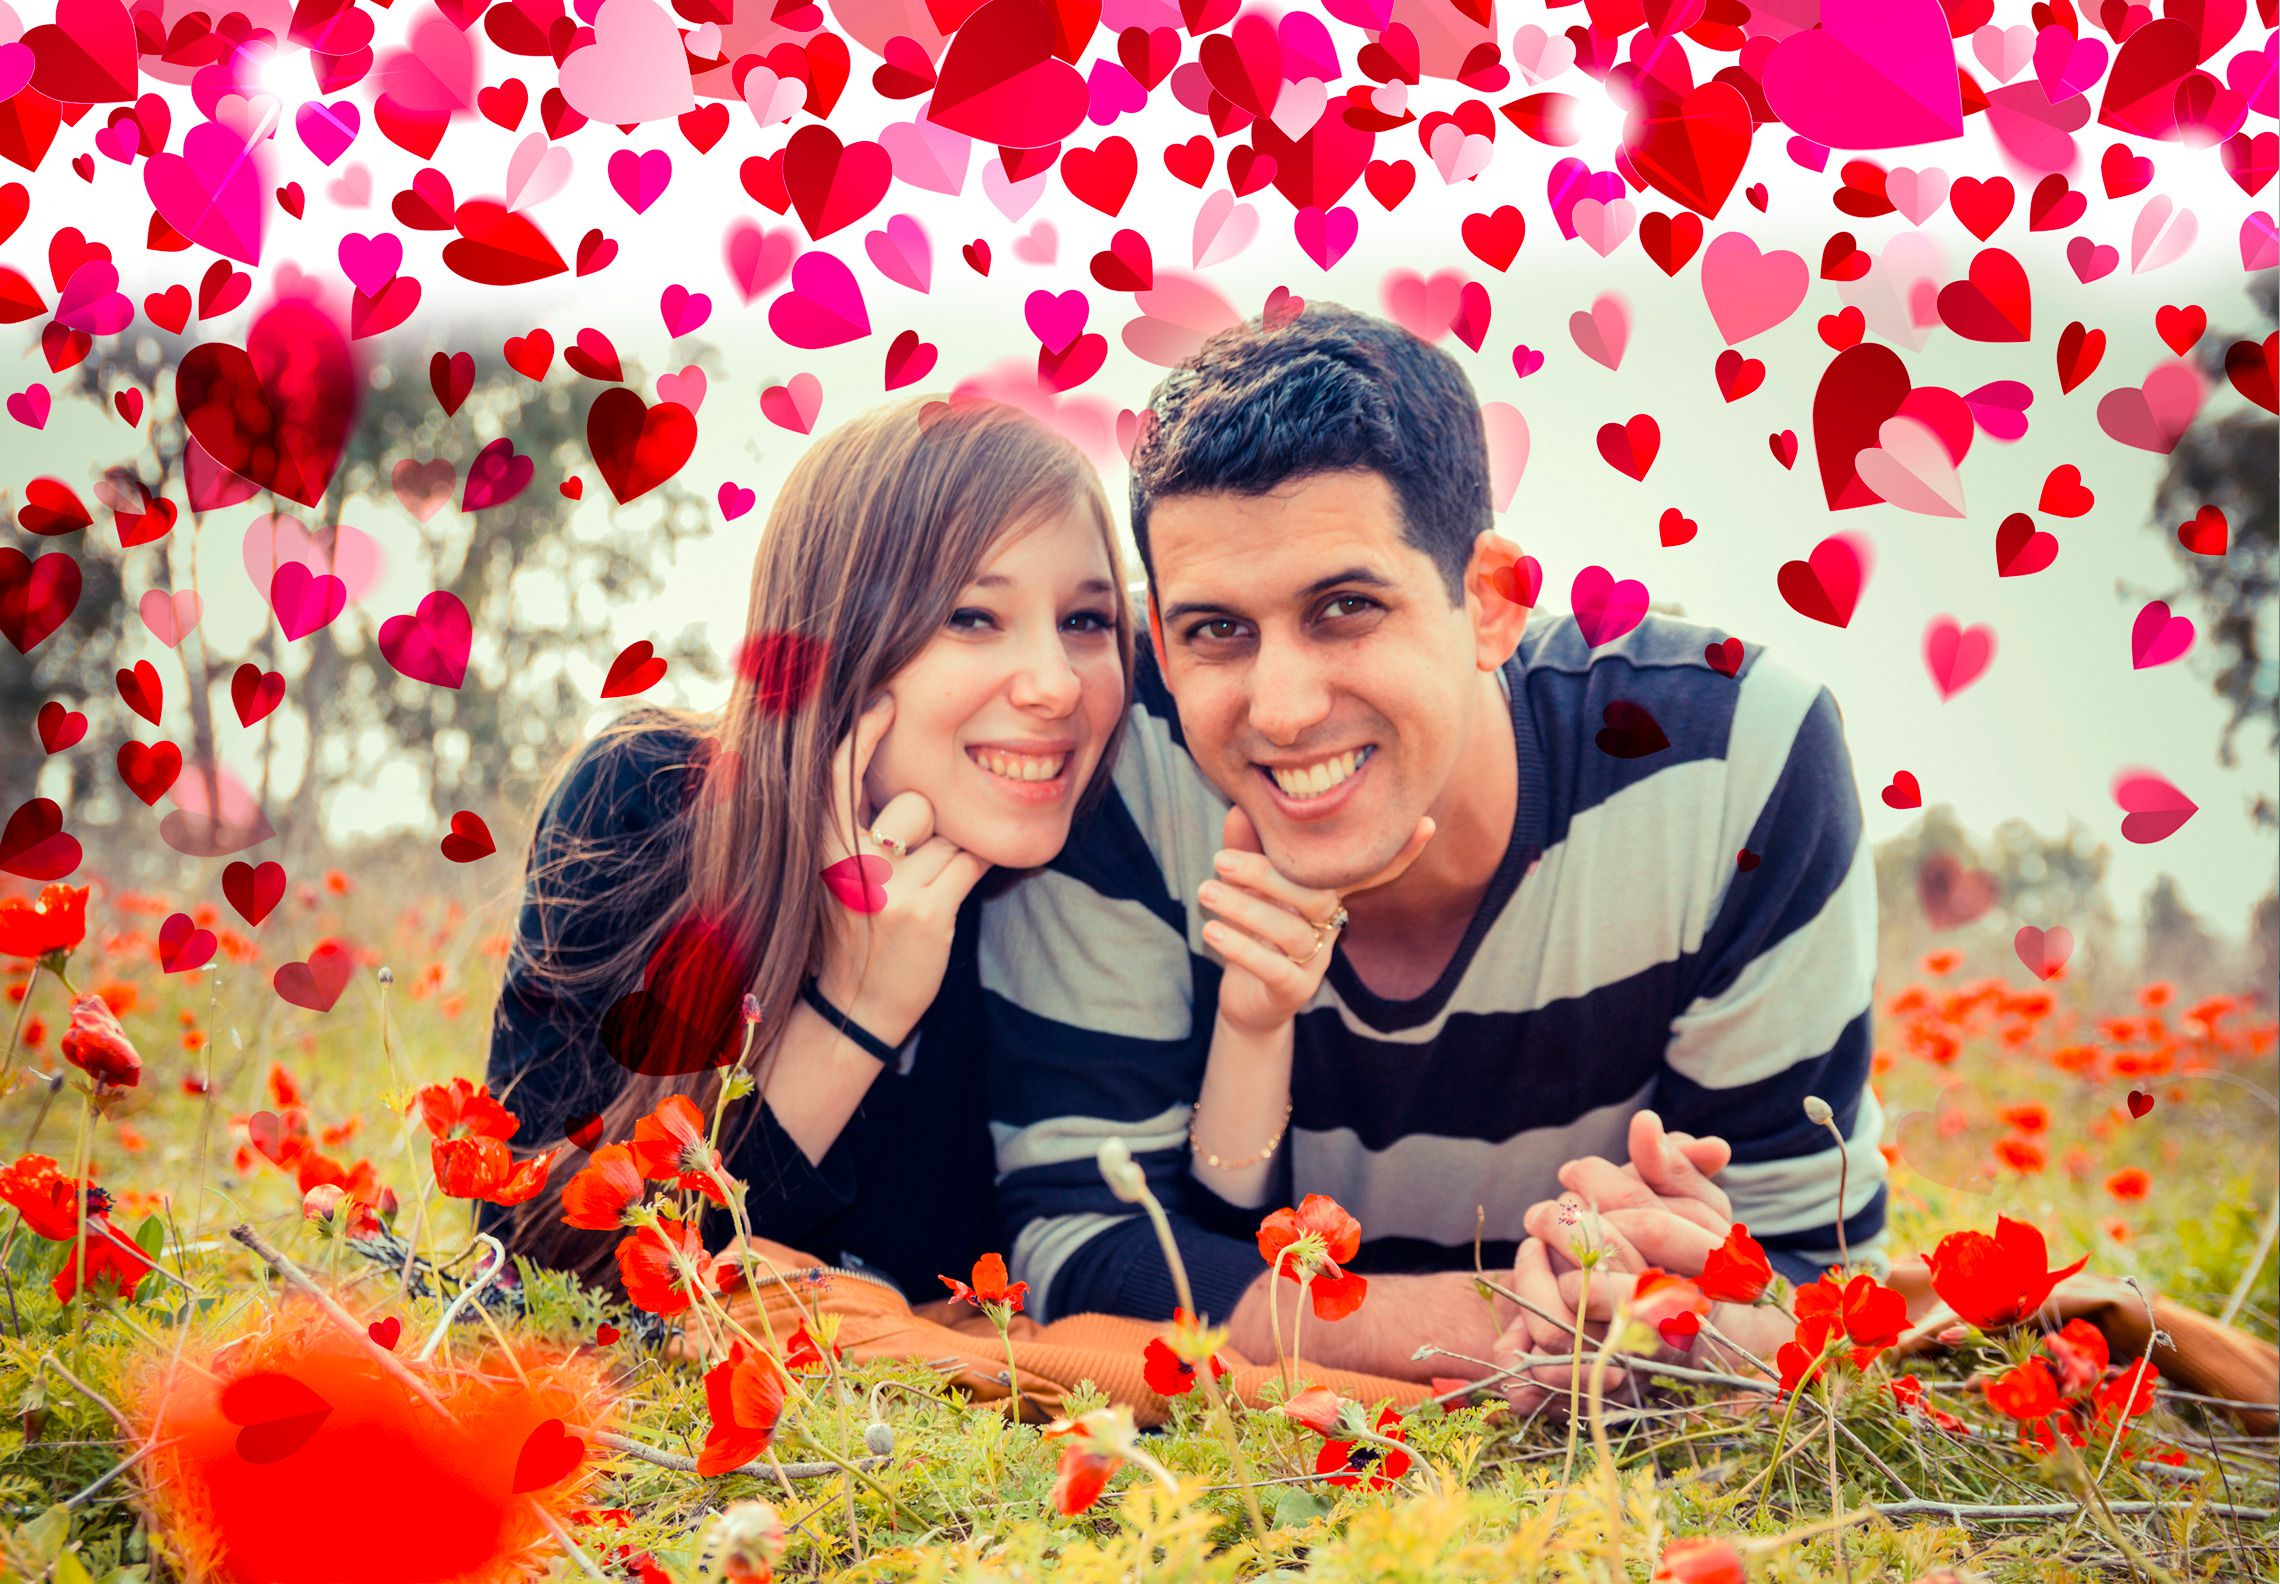 8 quirkiest facts about tu bav the jewish valentines day you never heard of